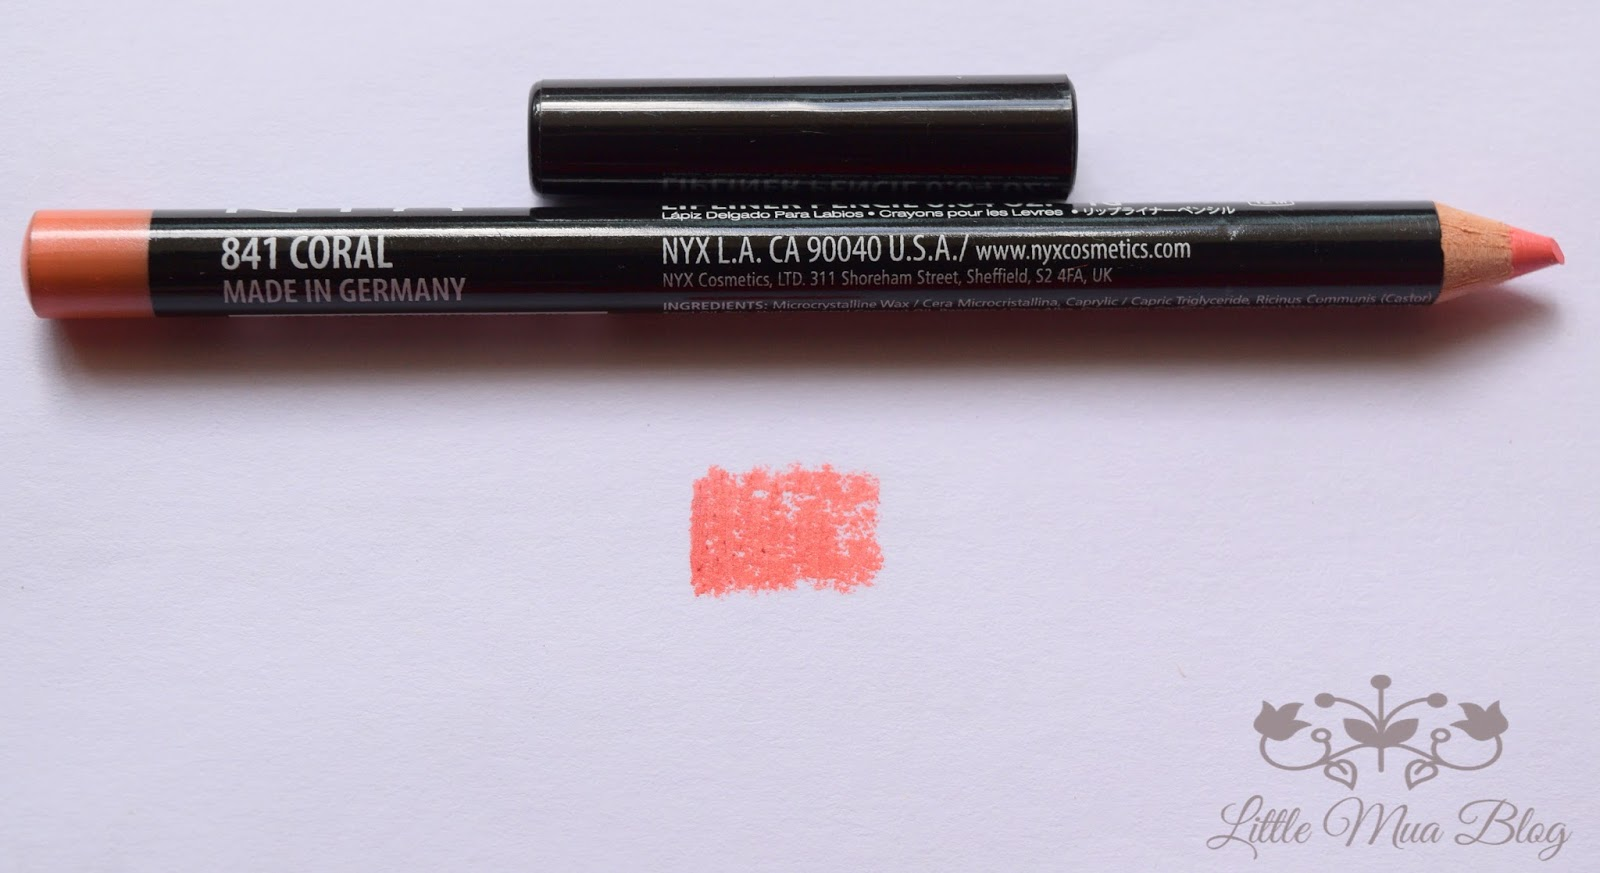 nyx lip liner pencil dolly pink tangerine rose coral swatch review little mua blog